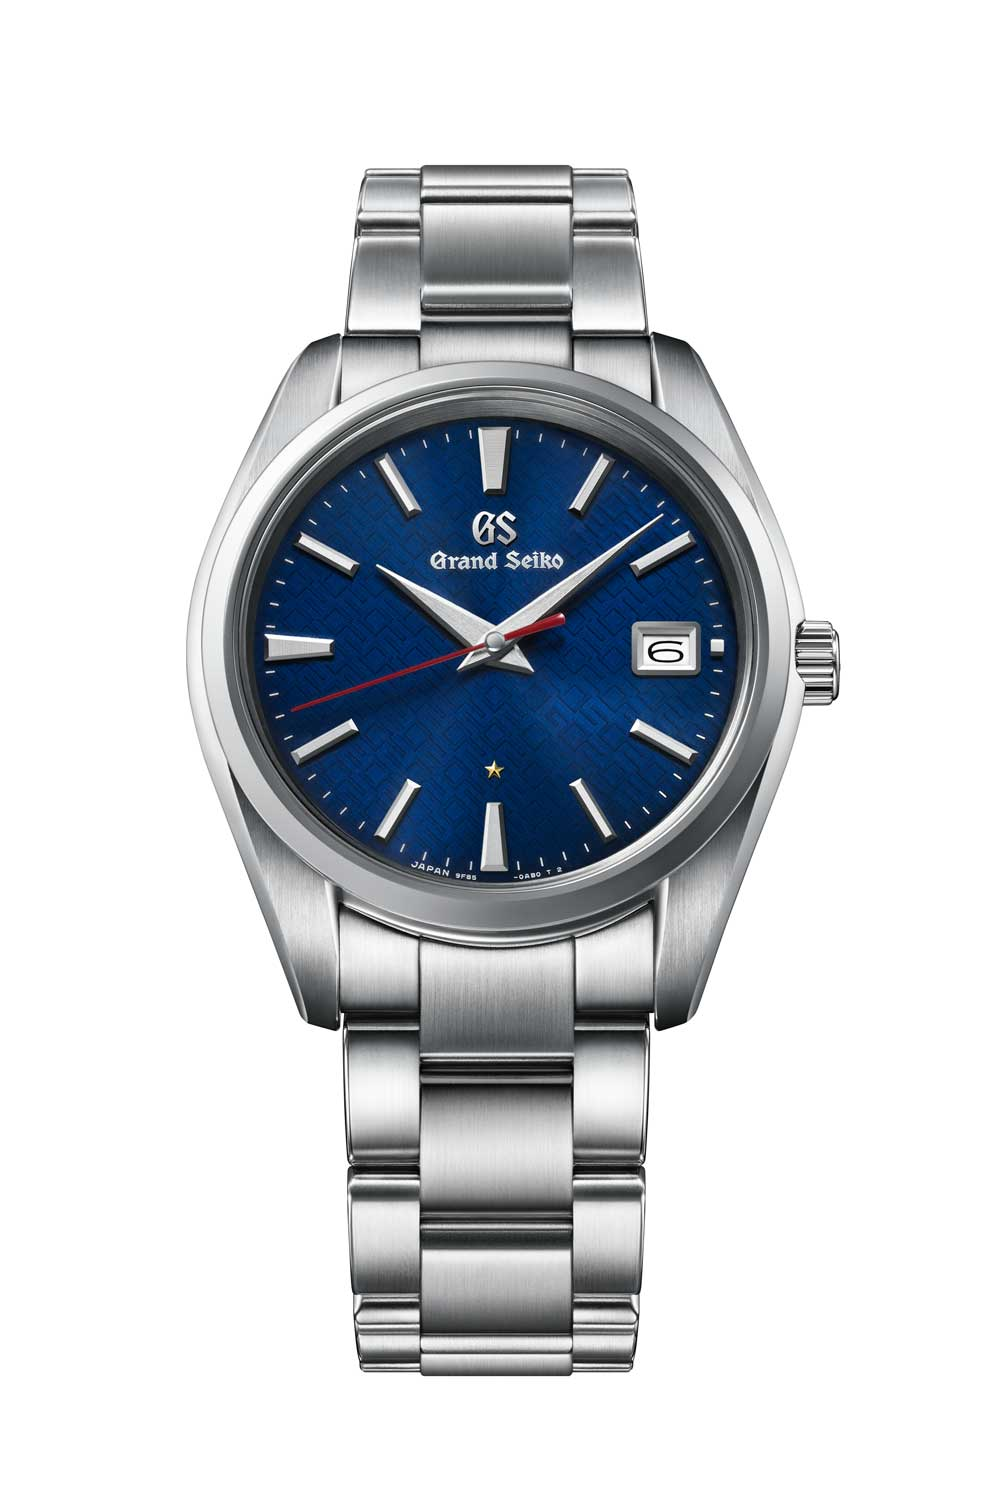 Grand Seiko Heritage Collection Quartz Limited Edition (2,500 pieces)